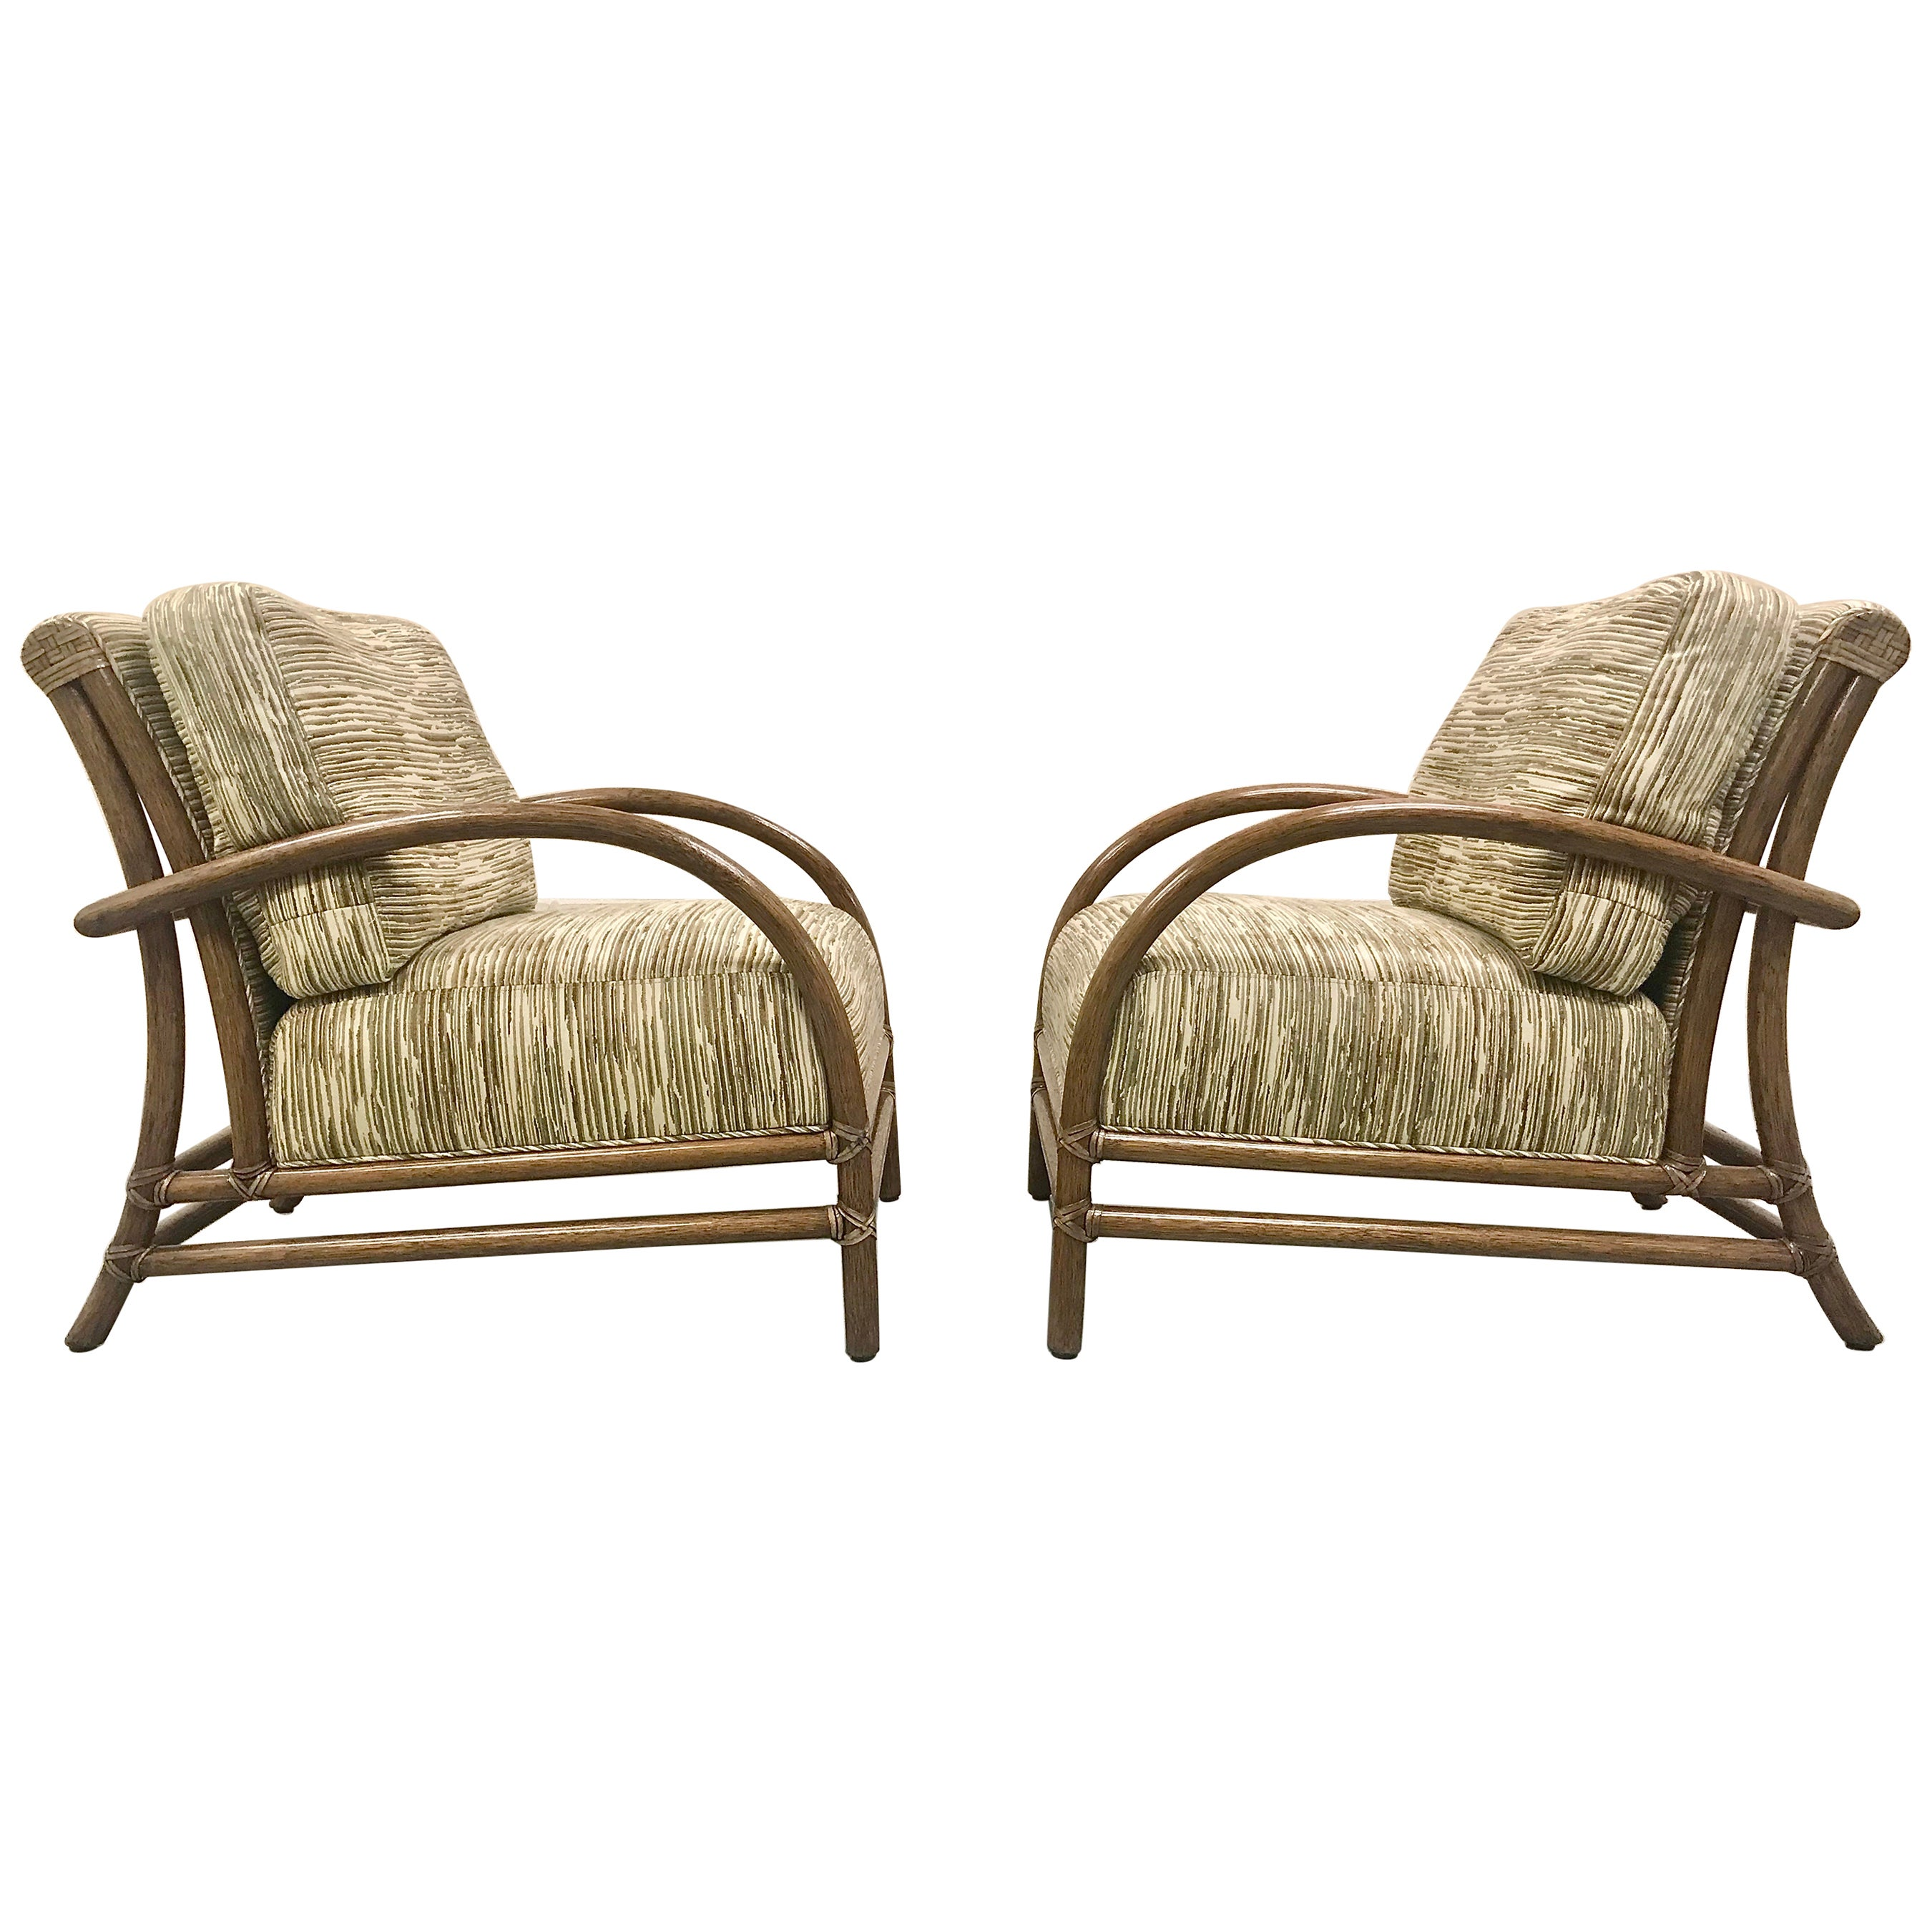 McGuire Pair of Toscana Rattan Lounge Chairs